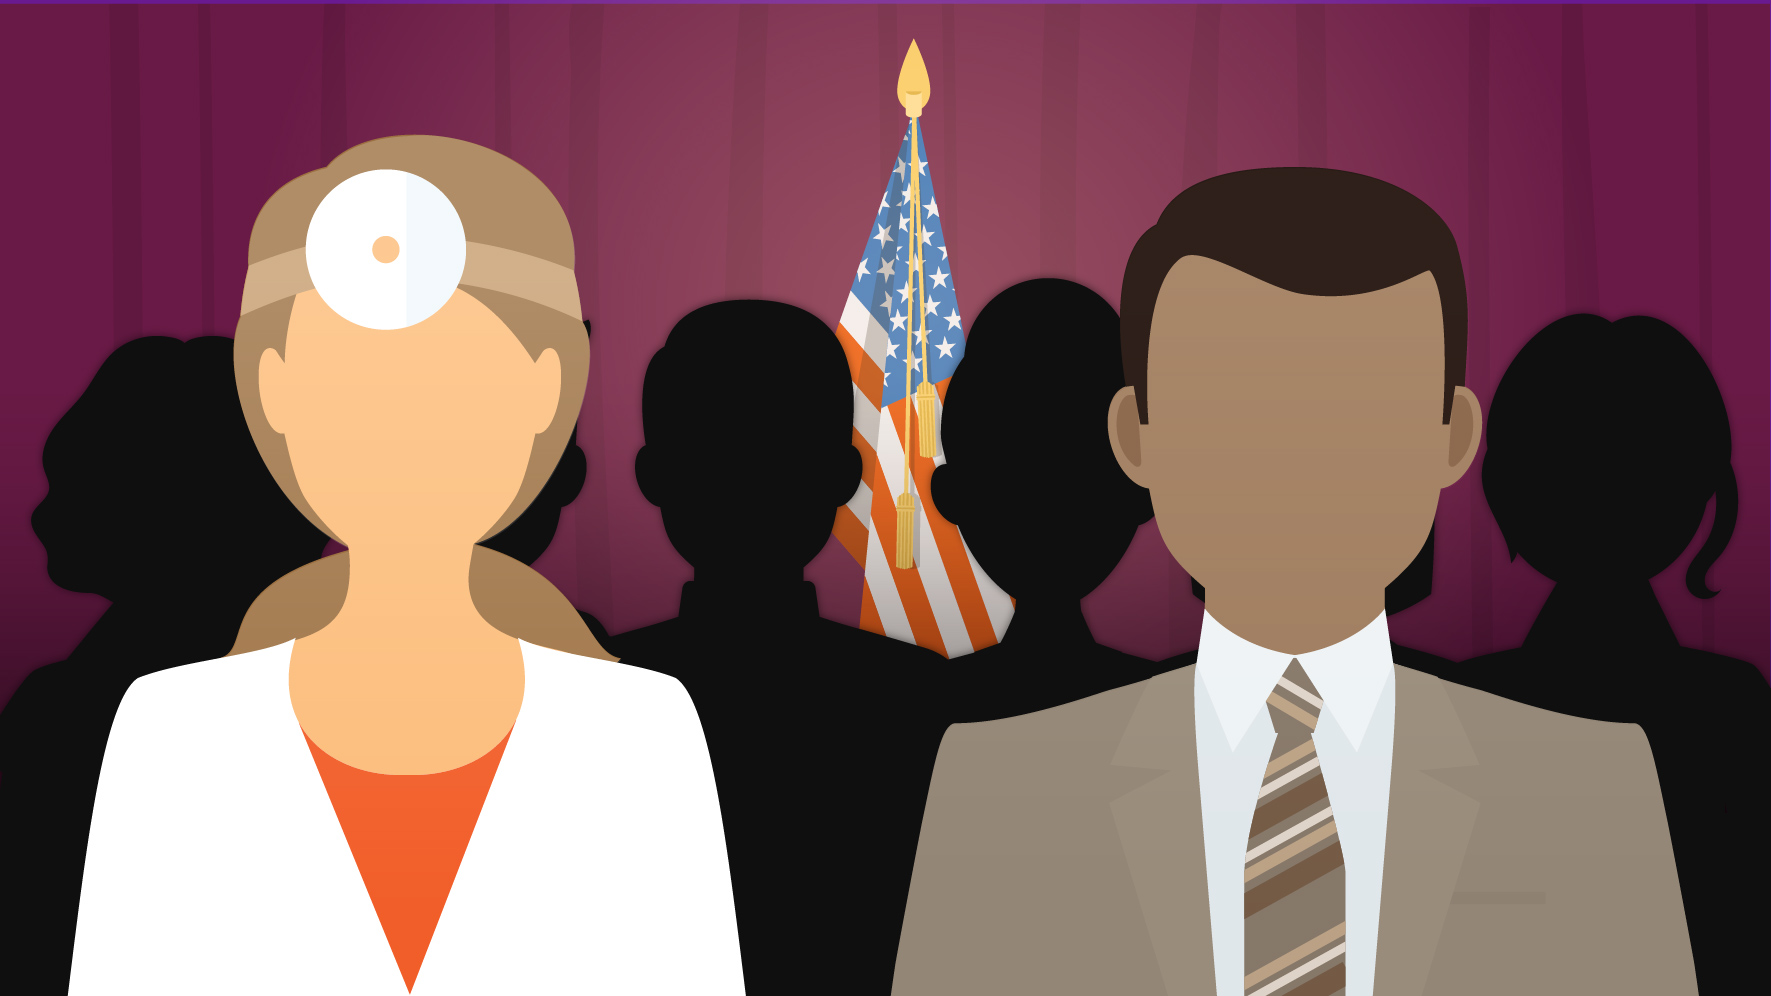 illustration of doctors standing in front of USA flag